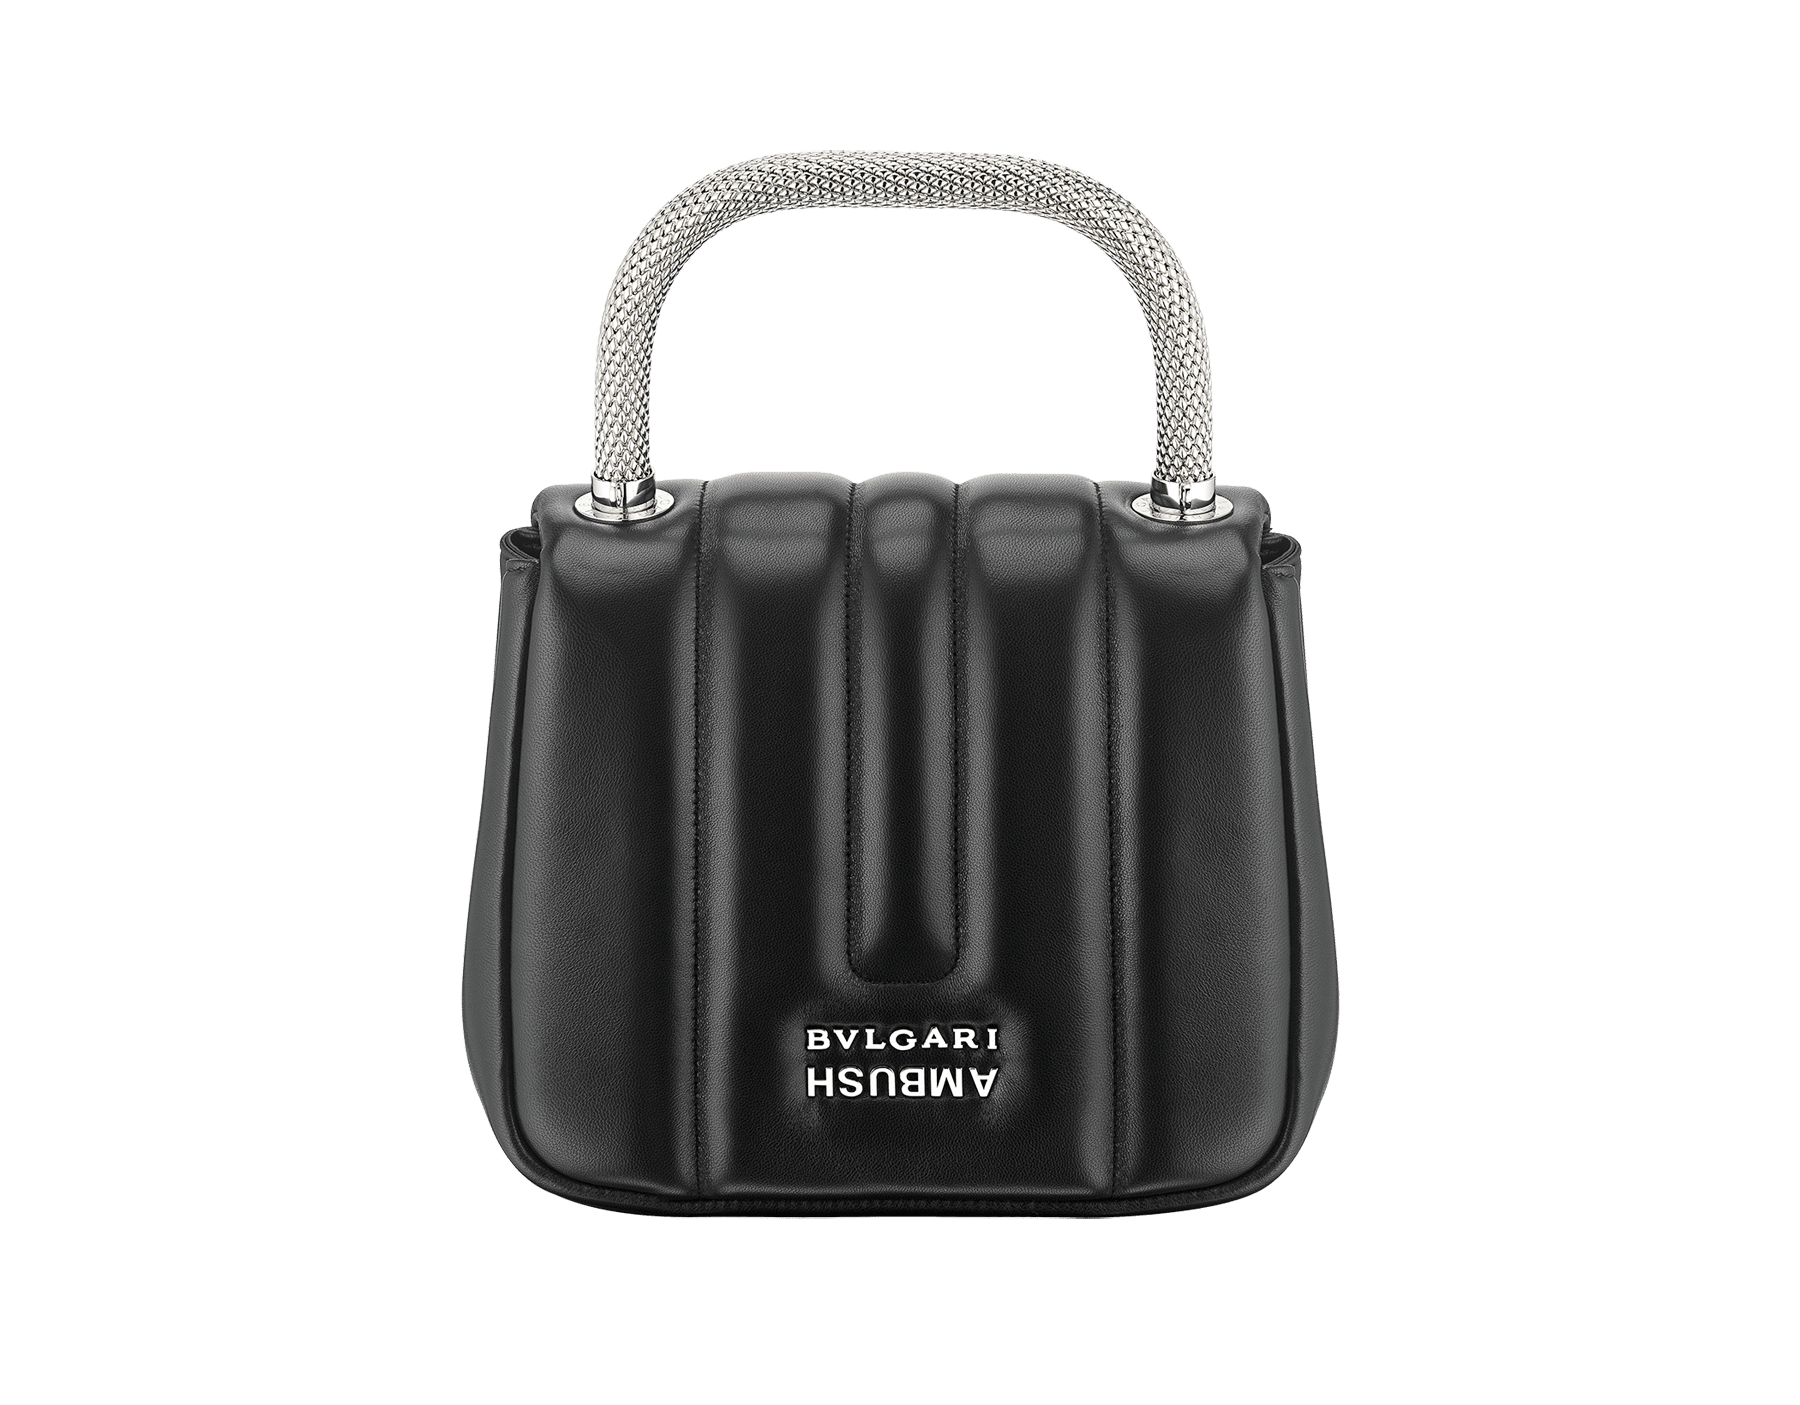 """Ambush x Bvlgari"" top handle bag in black nappa leather. New Serpenti head closure in palladium plated brass dressed with black nappa leather, finished with seductive mother of pearl eyes. Limited edition. 290343 image 3"